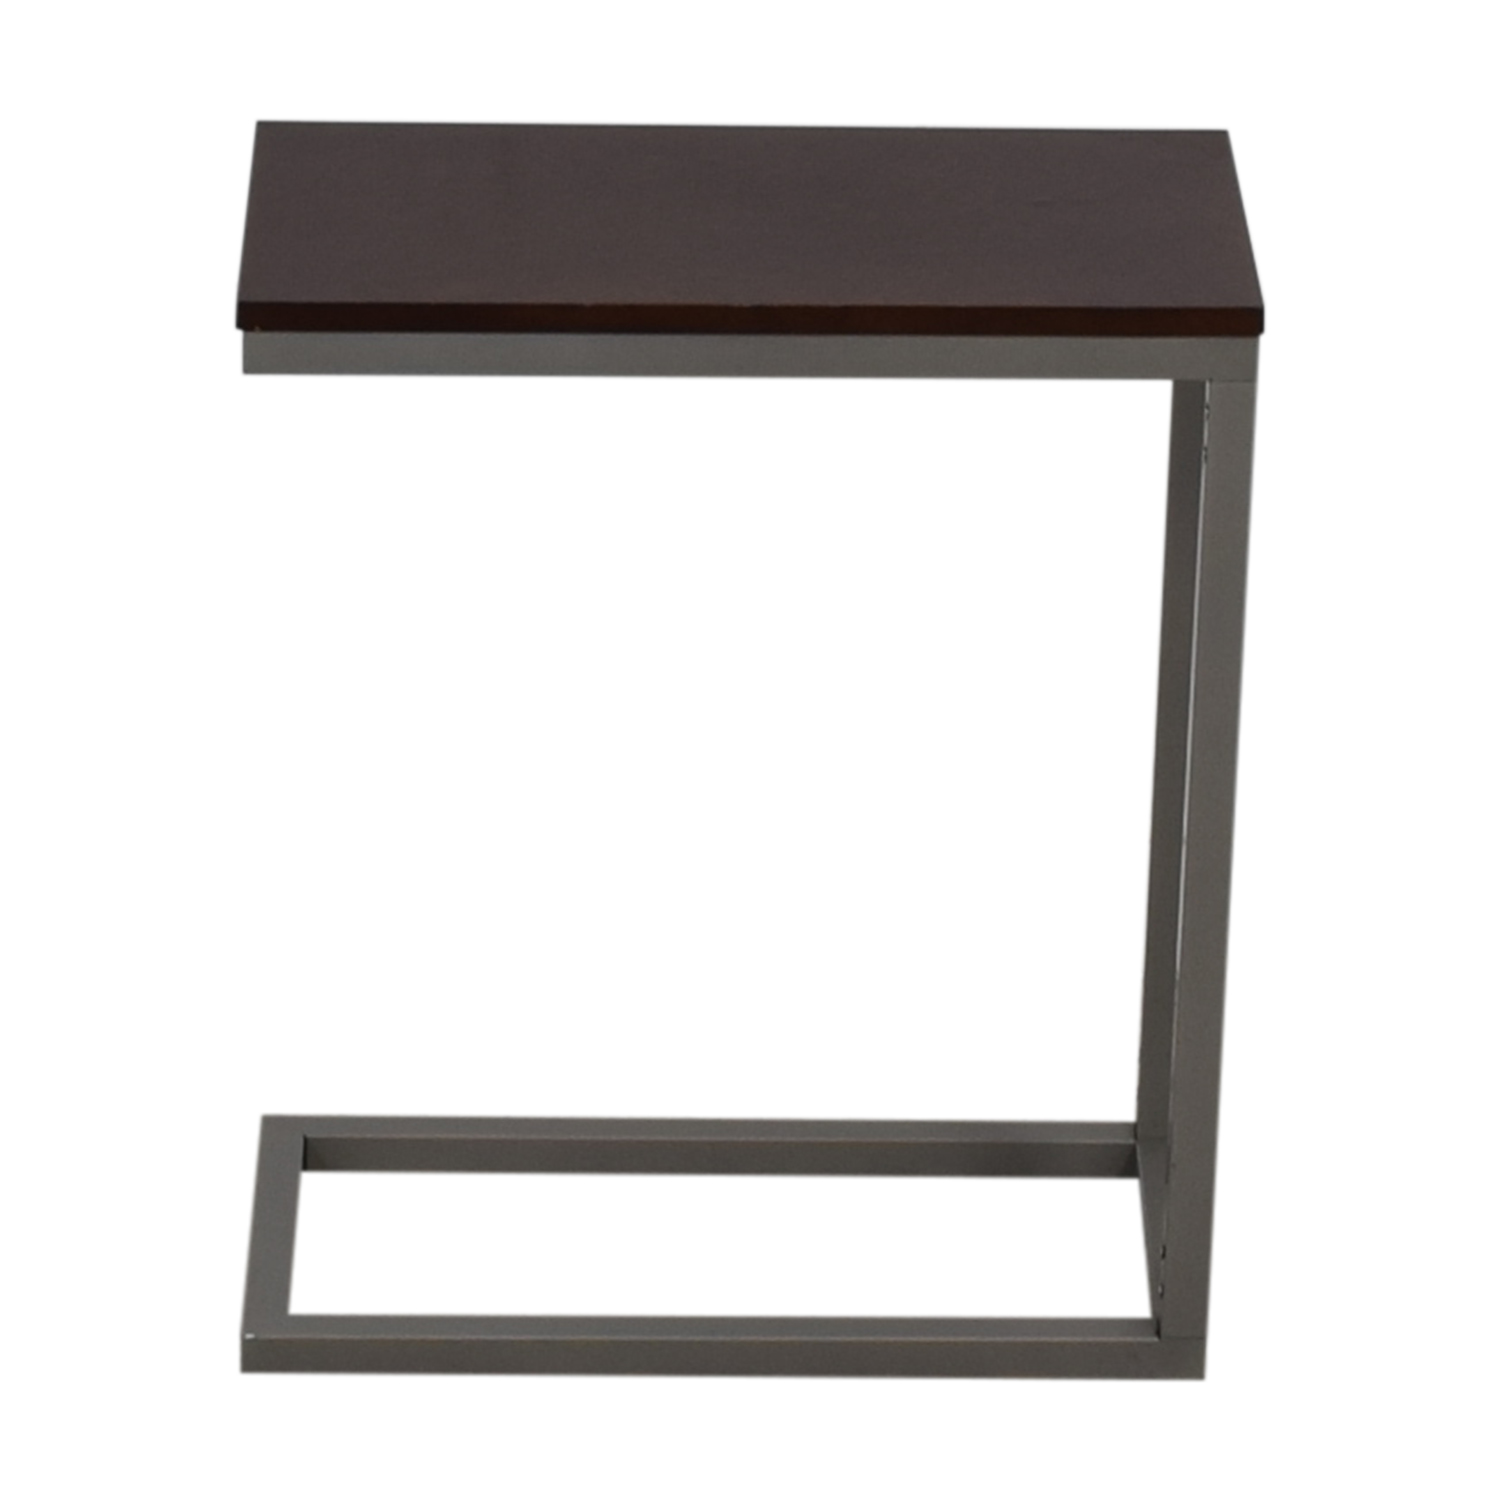 West Elm C-Shaped End Table sale